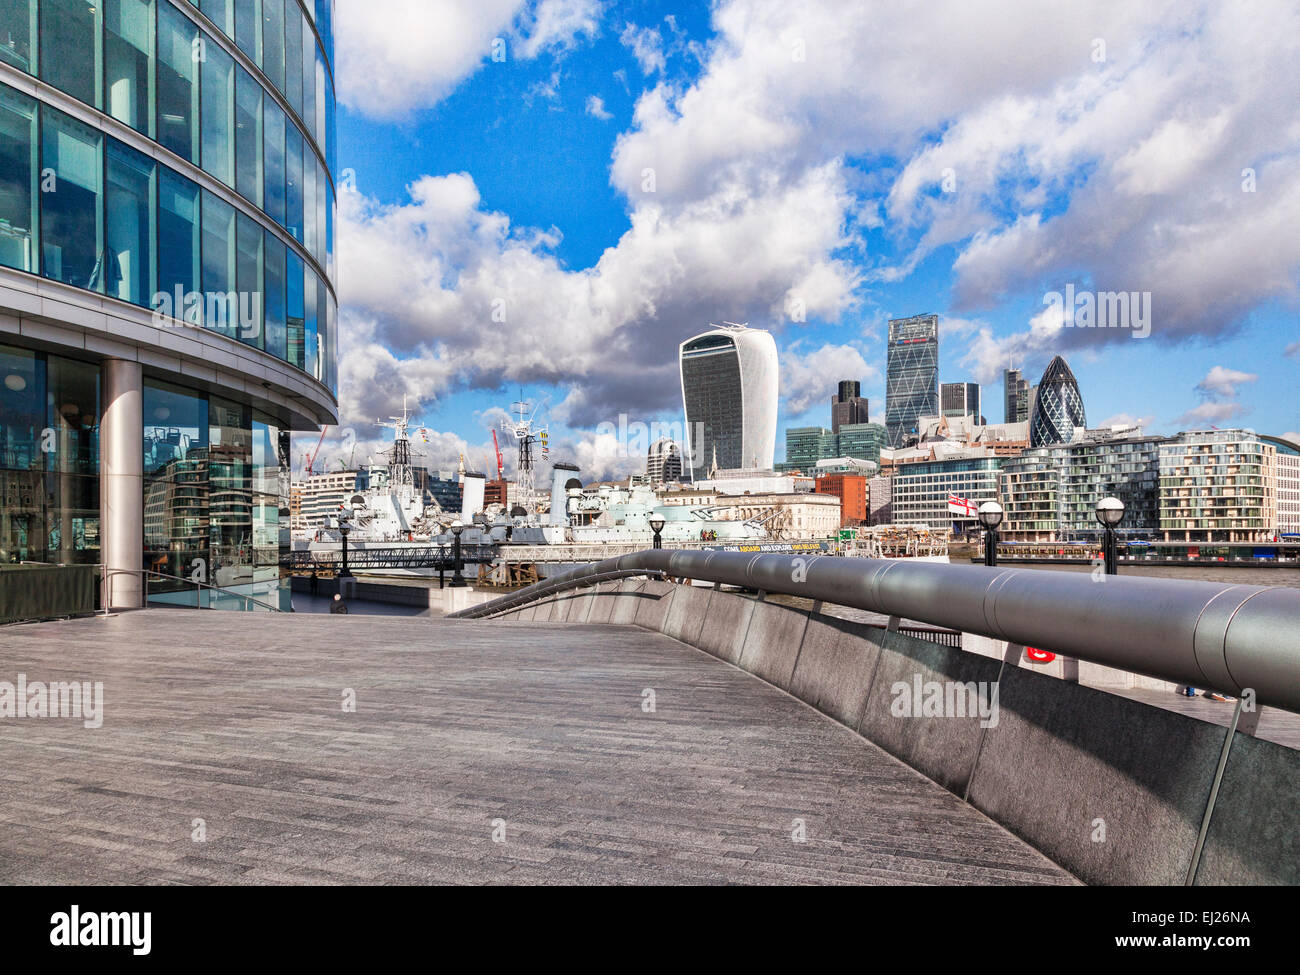 London skyline and More London, London, England. - Stock Image